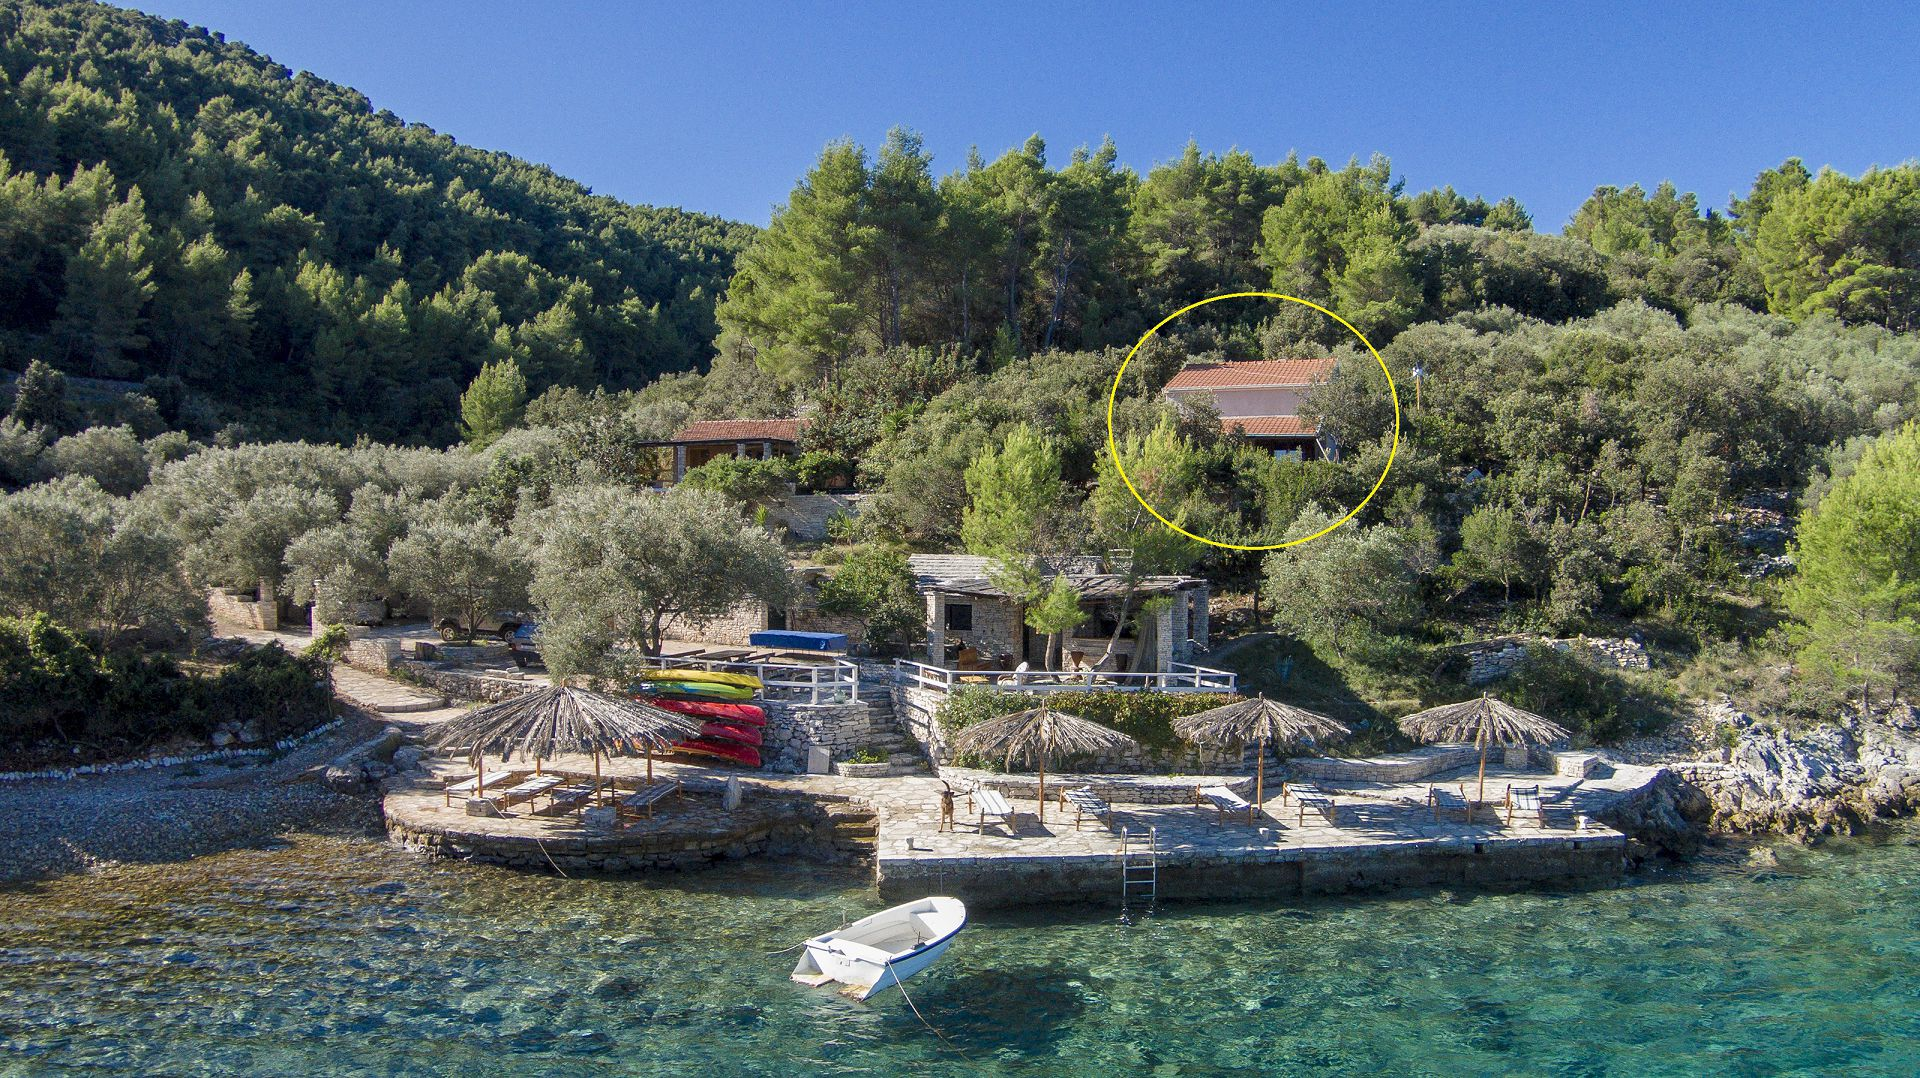 B1214VLUK  - Cove Picena (Vela Luka) - Holiday houses, villas Croatia